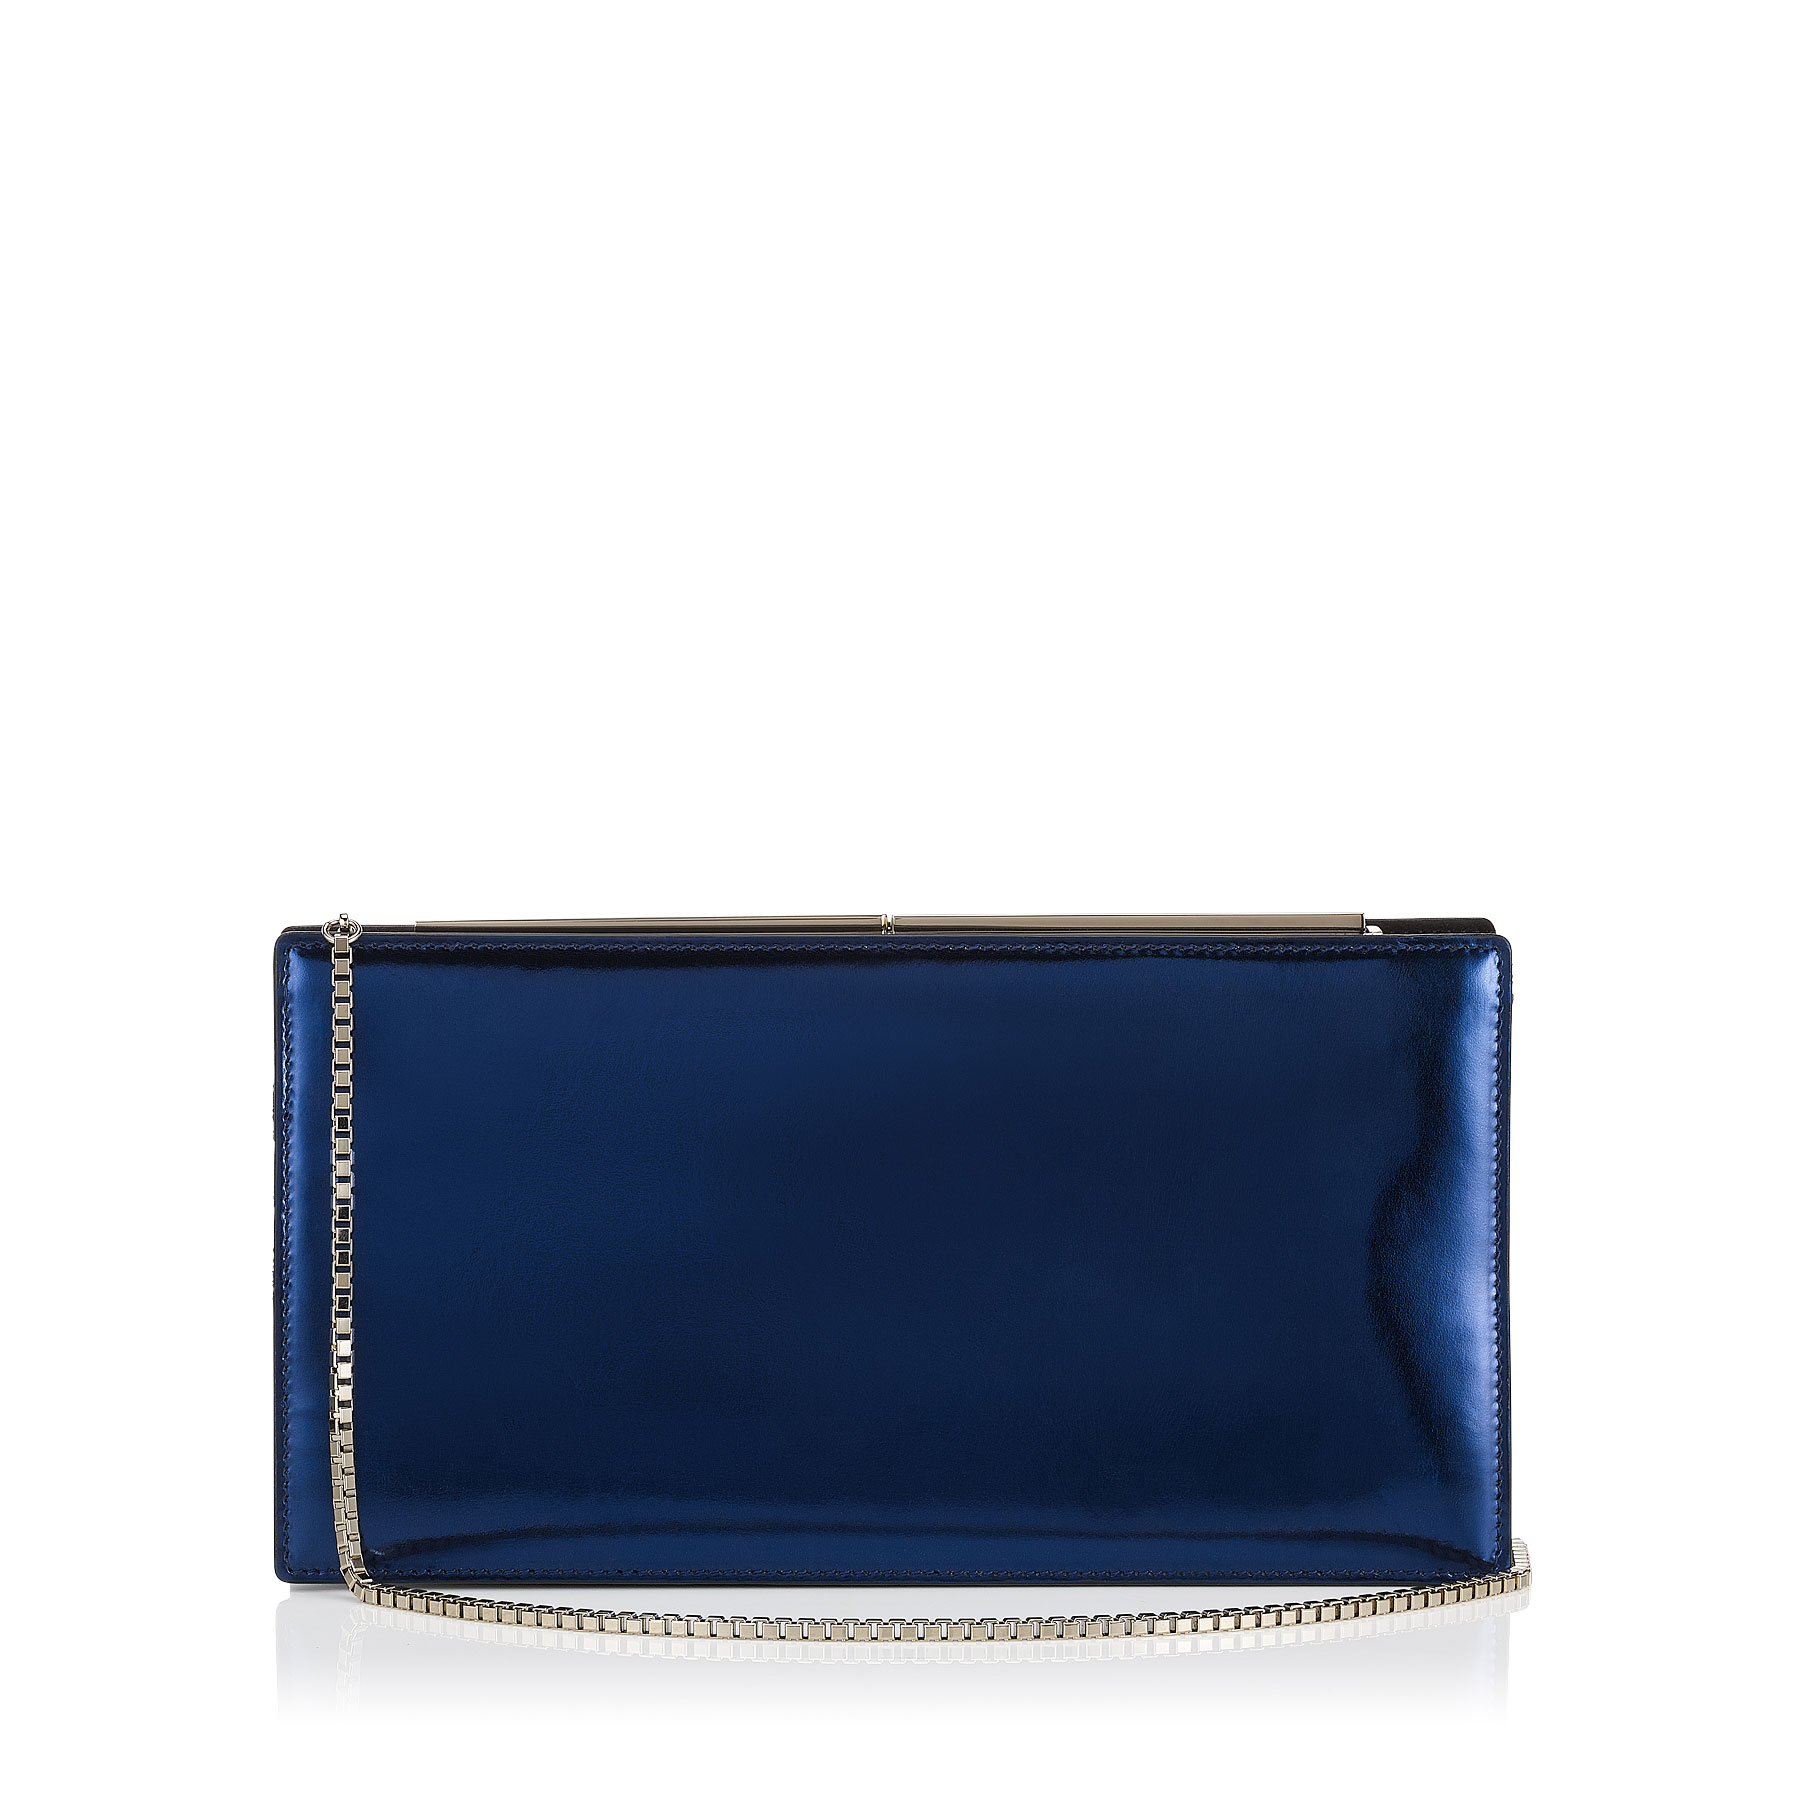 TUX Metallic Denim Mirror Leather and Suede Clutch Bag